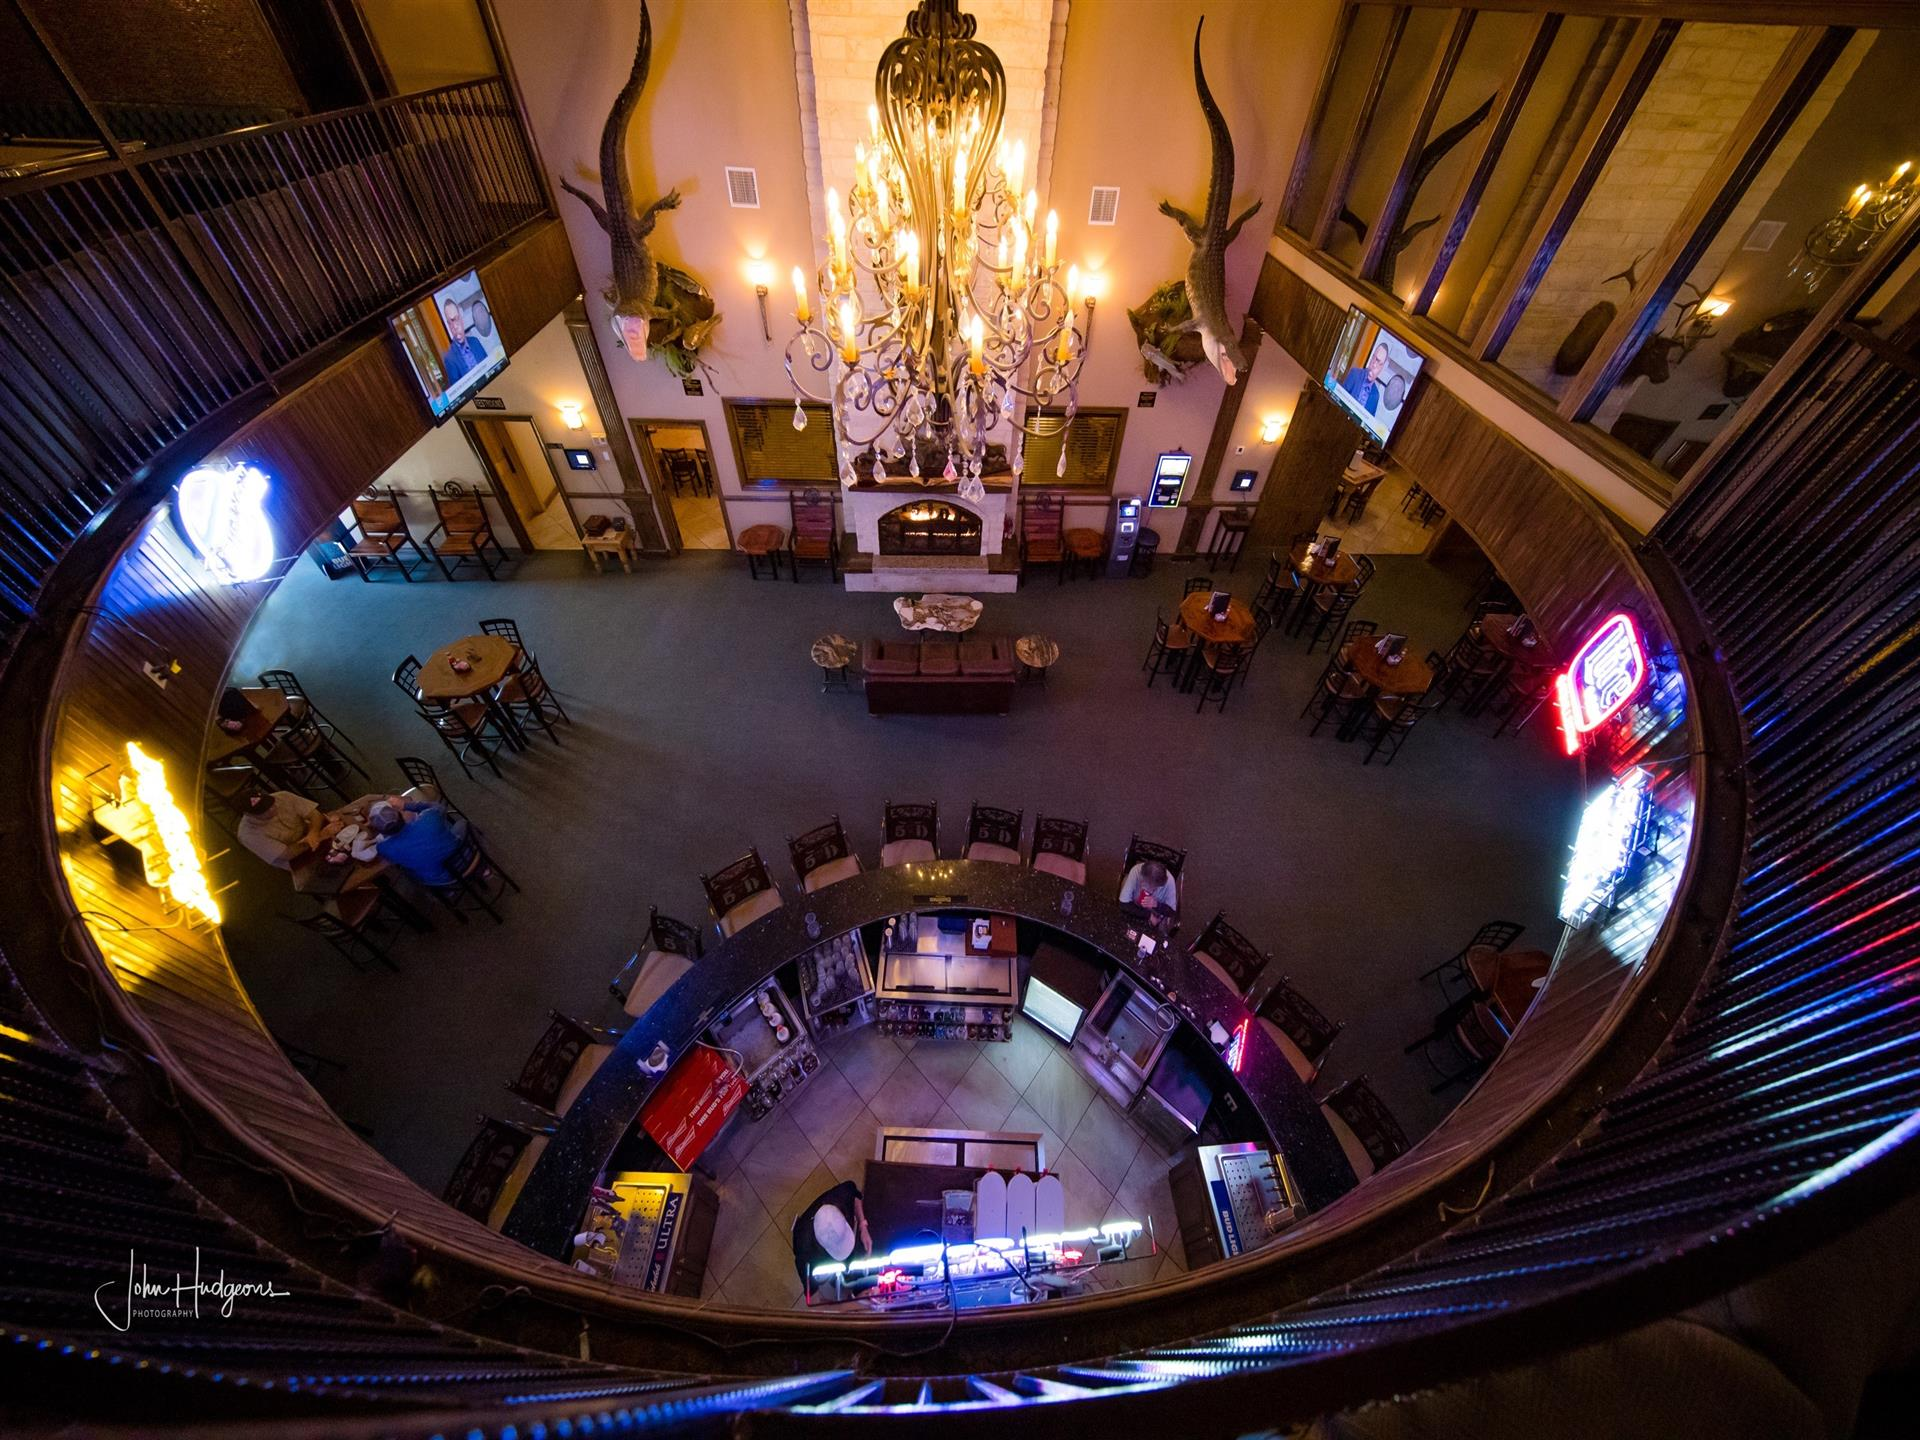 Panoramic photo from second floor balcony inside restaurant looking down on bar